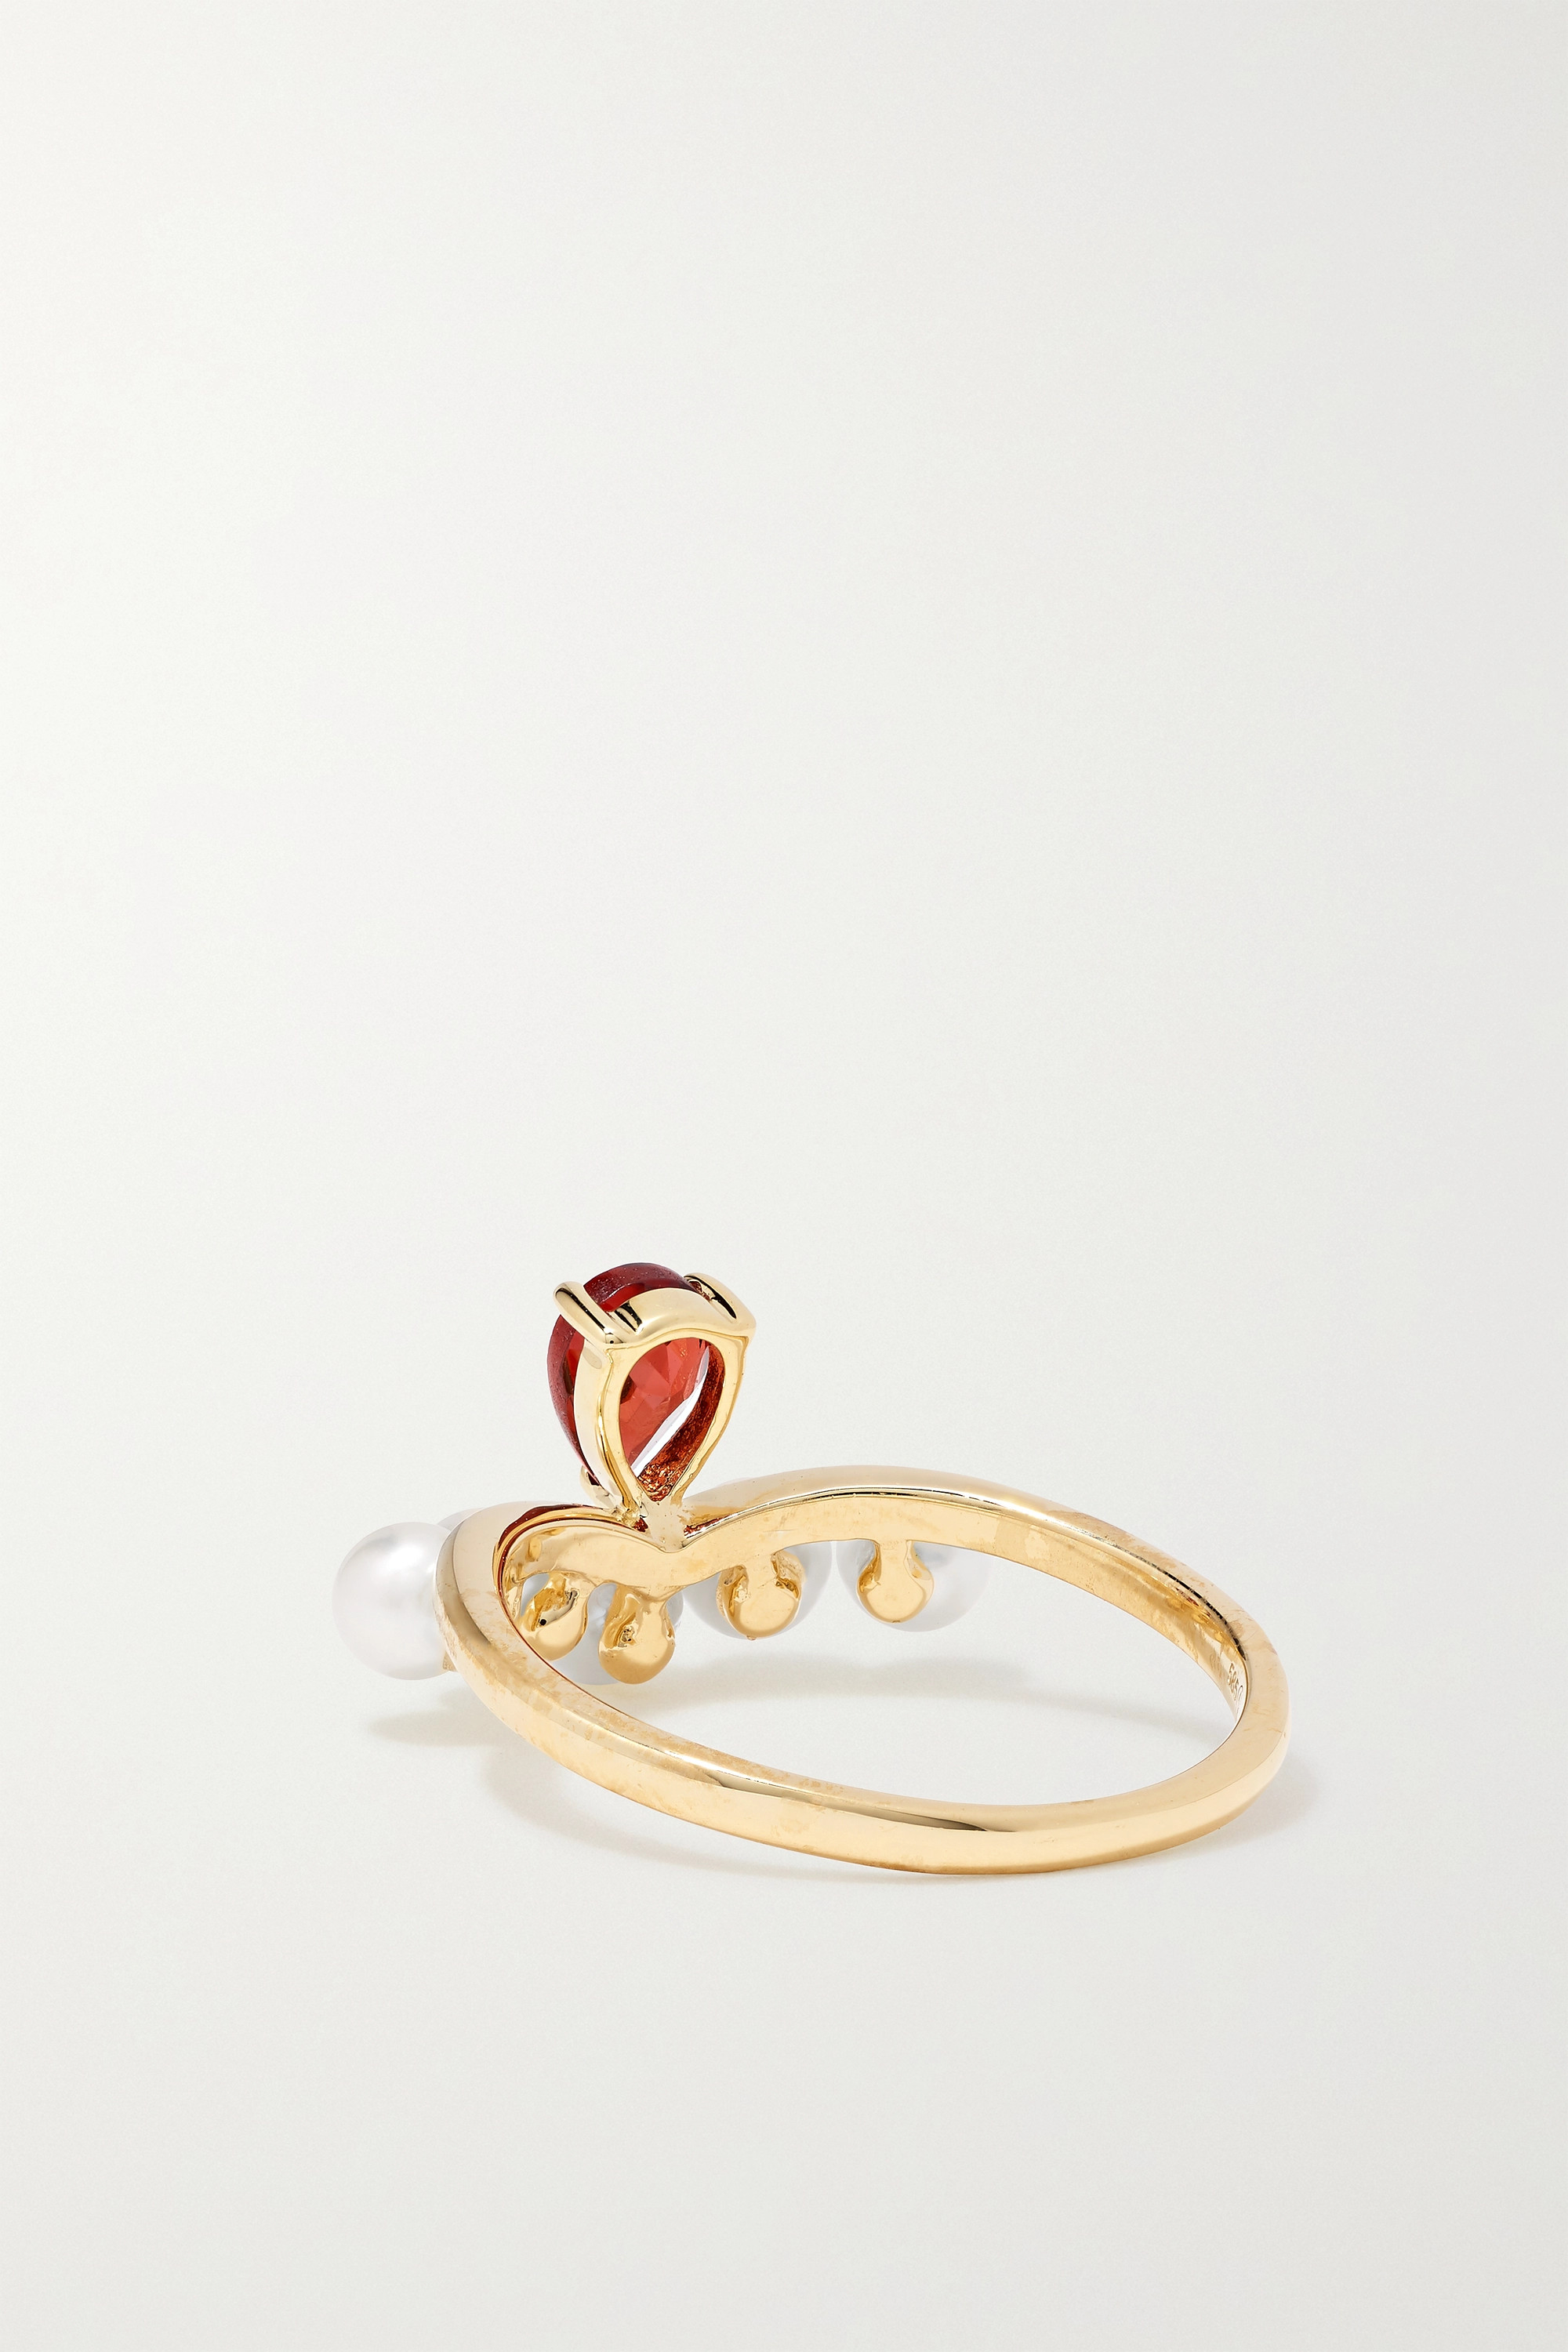 Anissa Kermiche Age of Innocence 14-karat gold, pearl and garnet ring